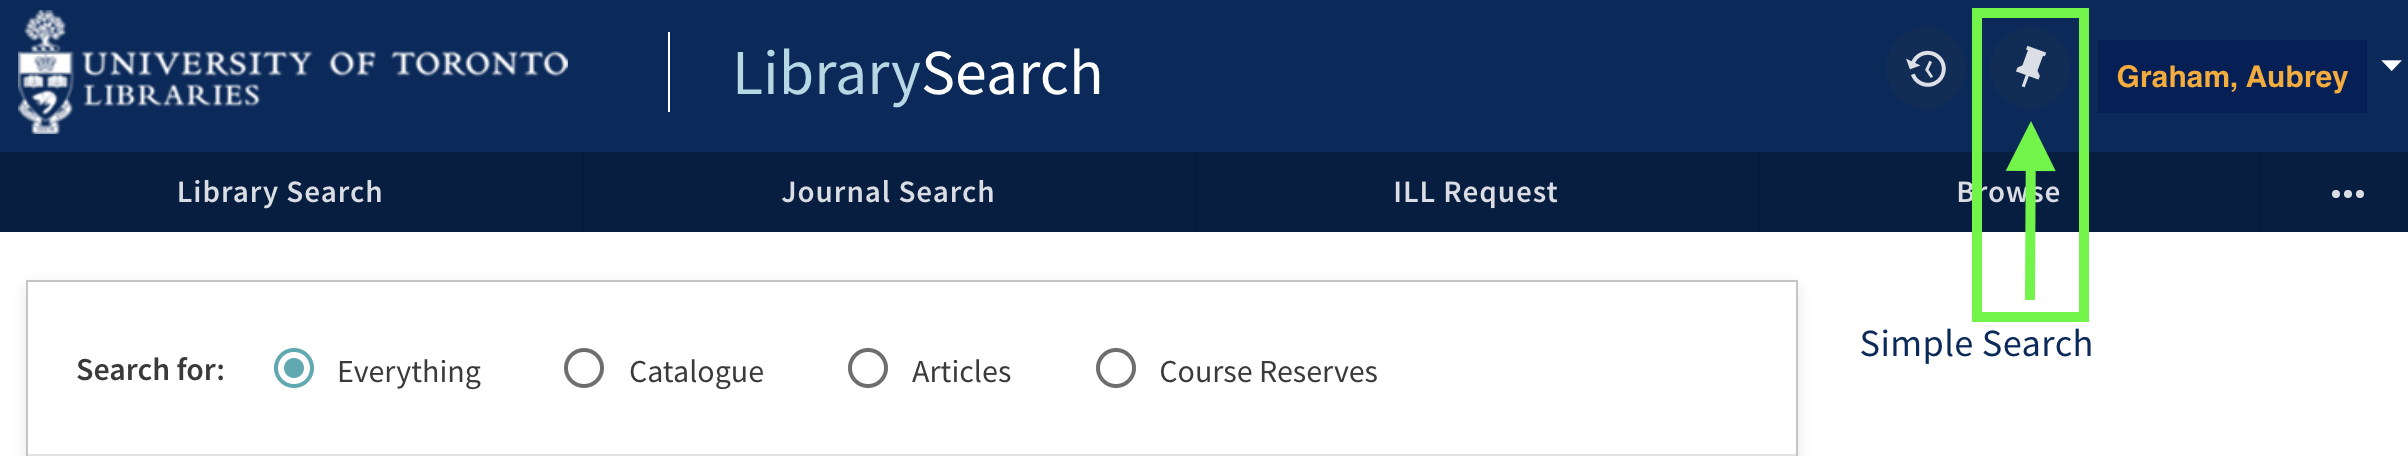 LibrarySearch banner showing the location of the push pin Favourites icon